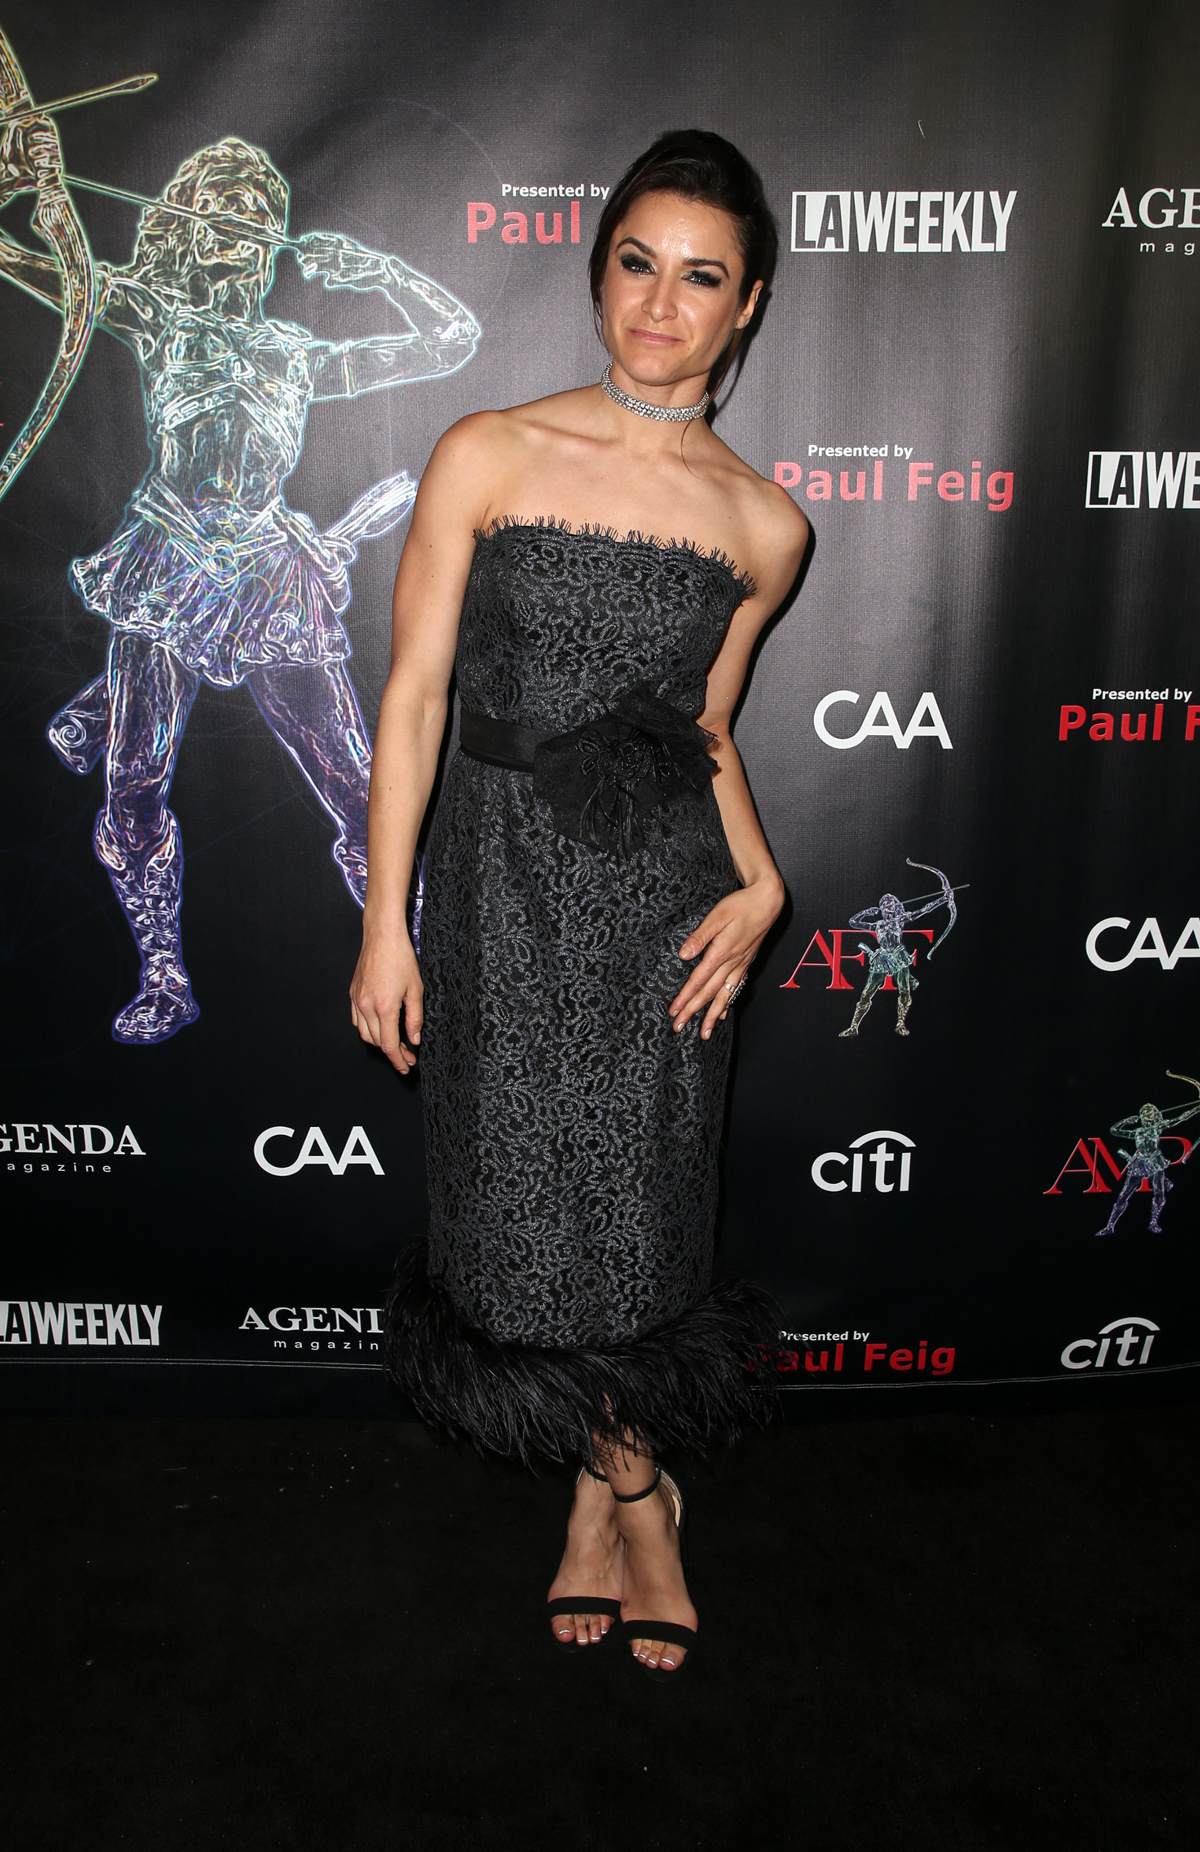 BEVERLY HILLS, CA - APRIL 26: Kachina Dechert, at the 2018 Artemis Awards Gala at the Ahrya Fine Arts Theater in Beverly Hills, California on April 26, 2018. Credit: Faye Sadou/MediaPunch